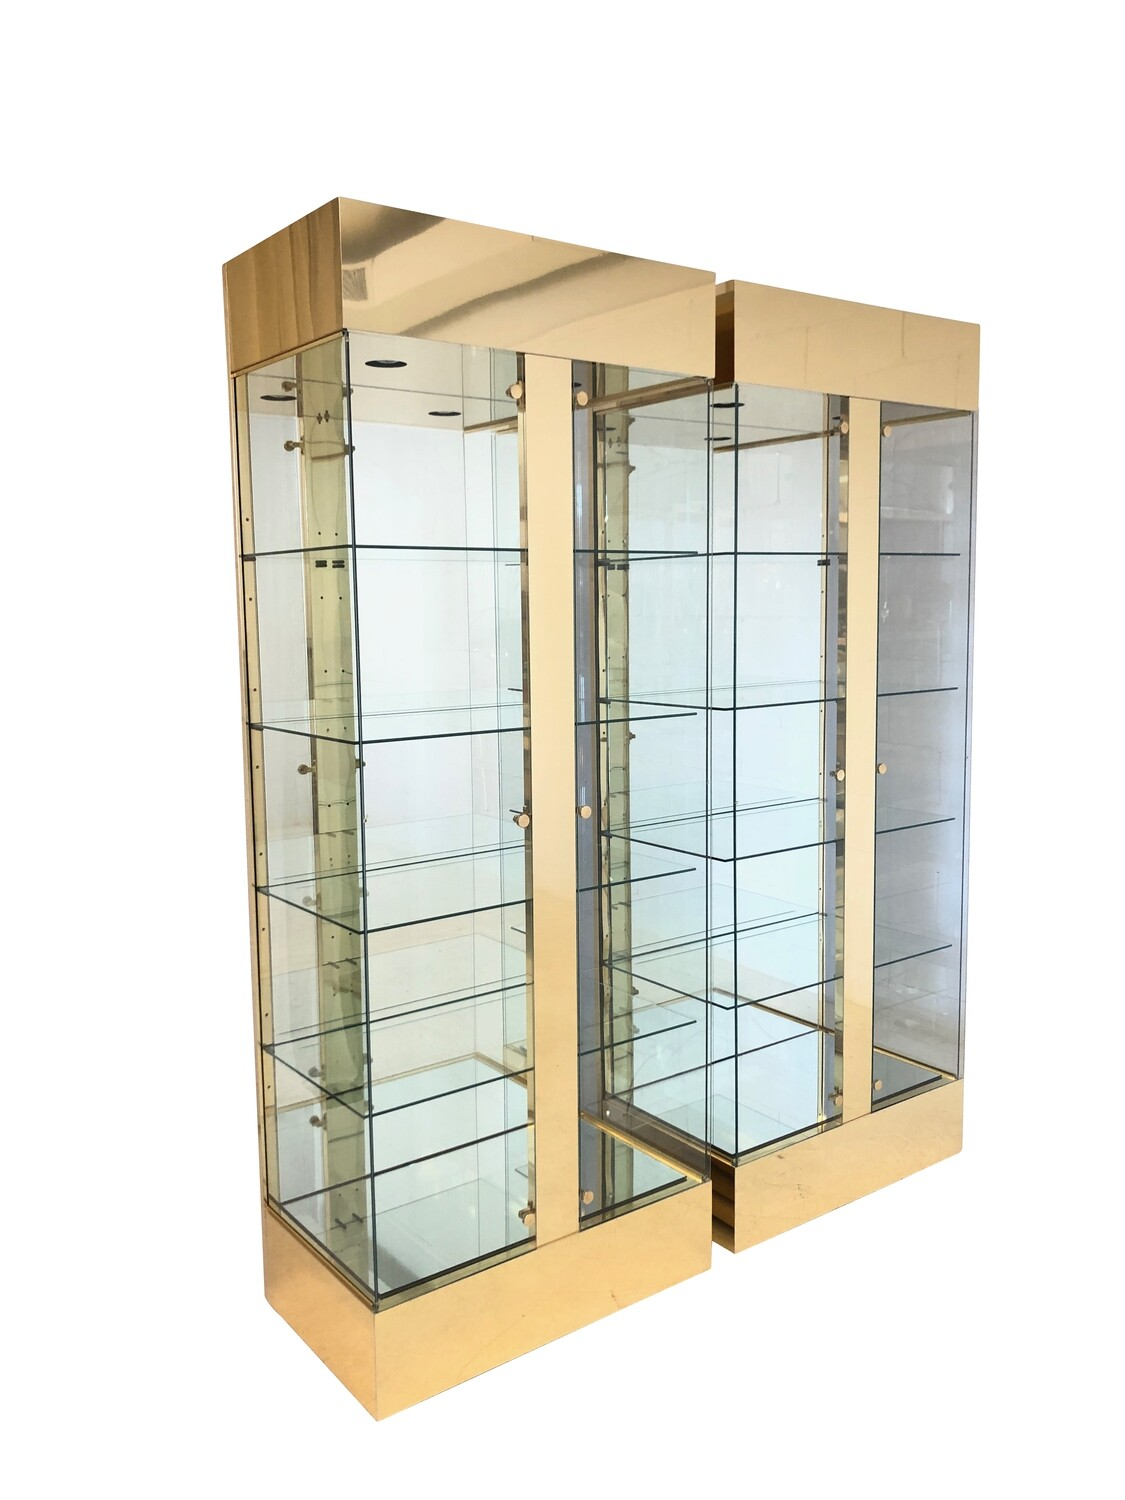 Pair of Lighted Brass and Glass Curios/ Display Cabinets